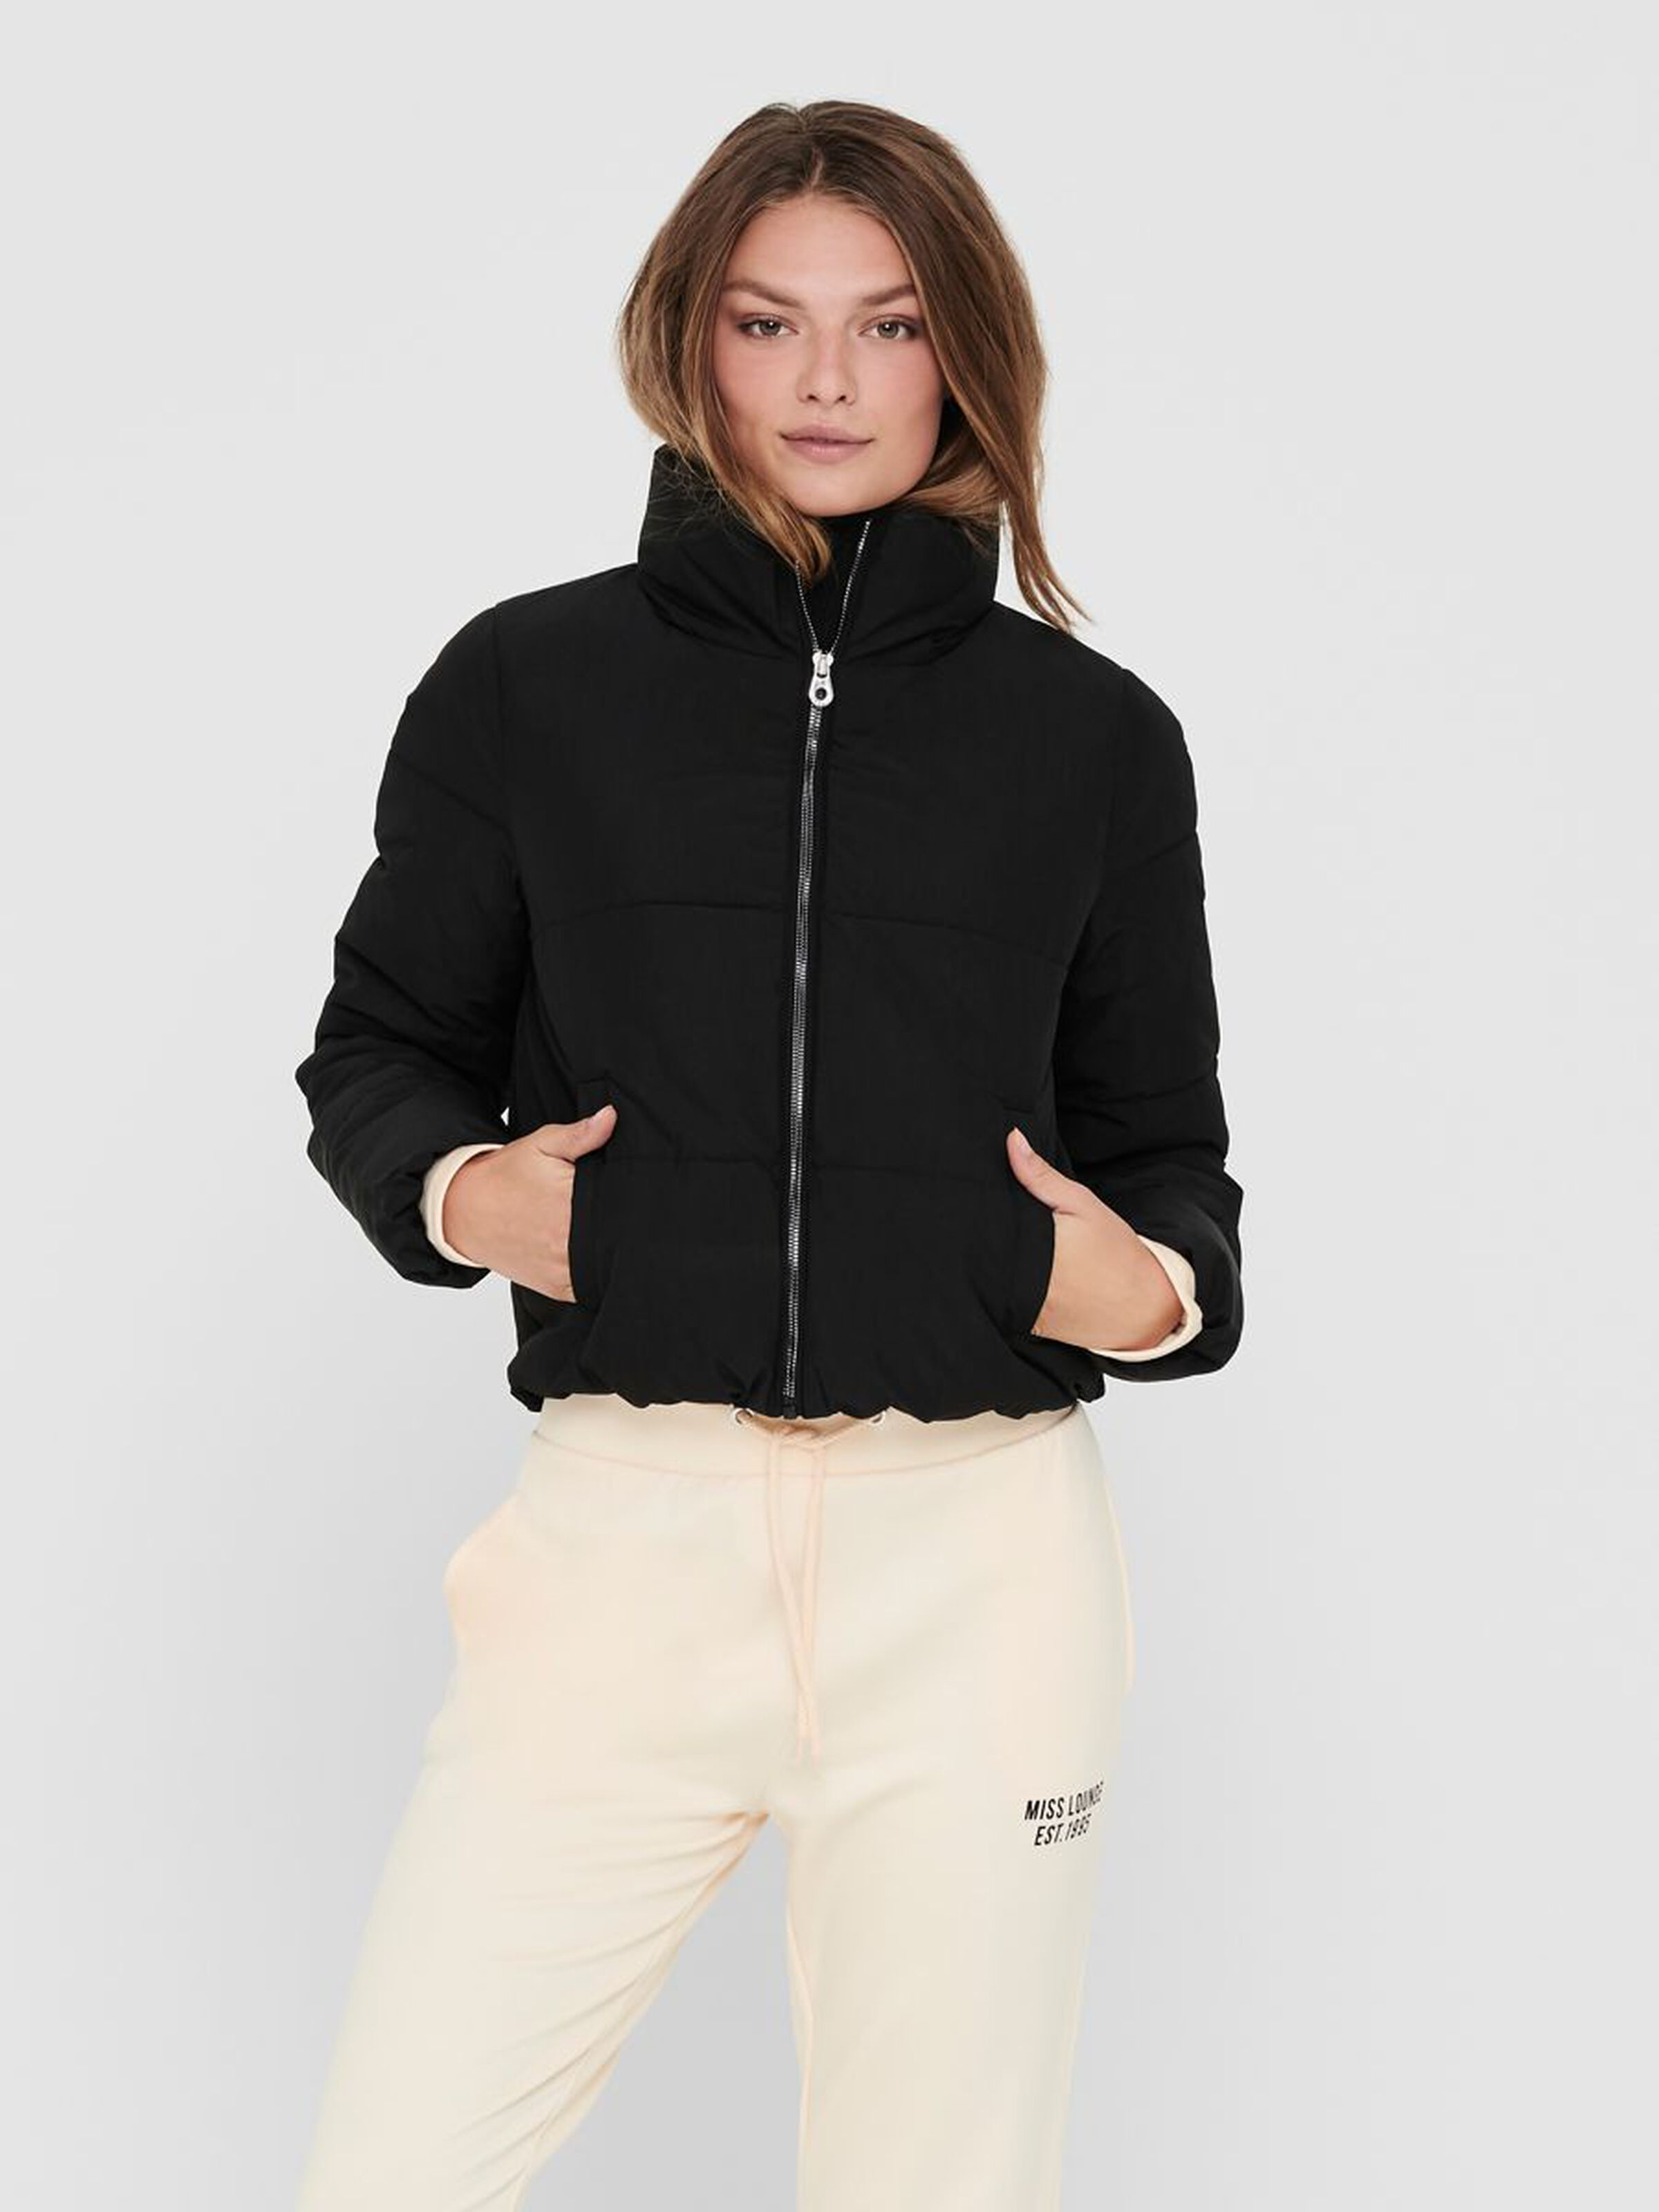 Only Solid Colored jacket, black, x-large